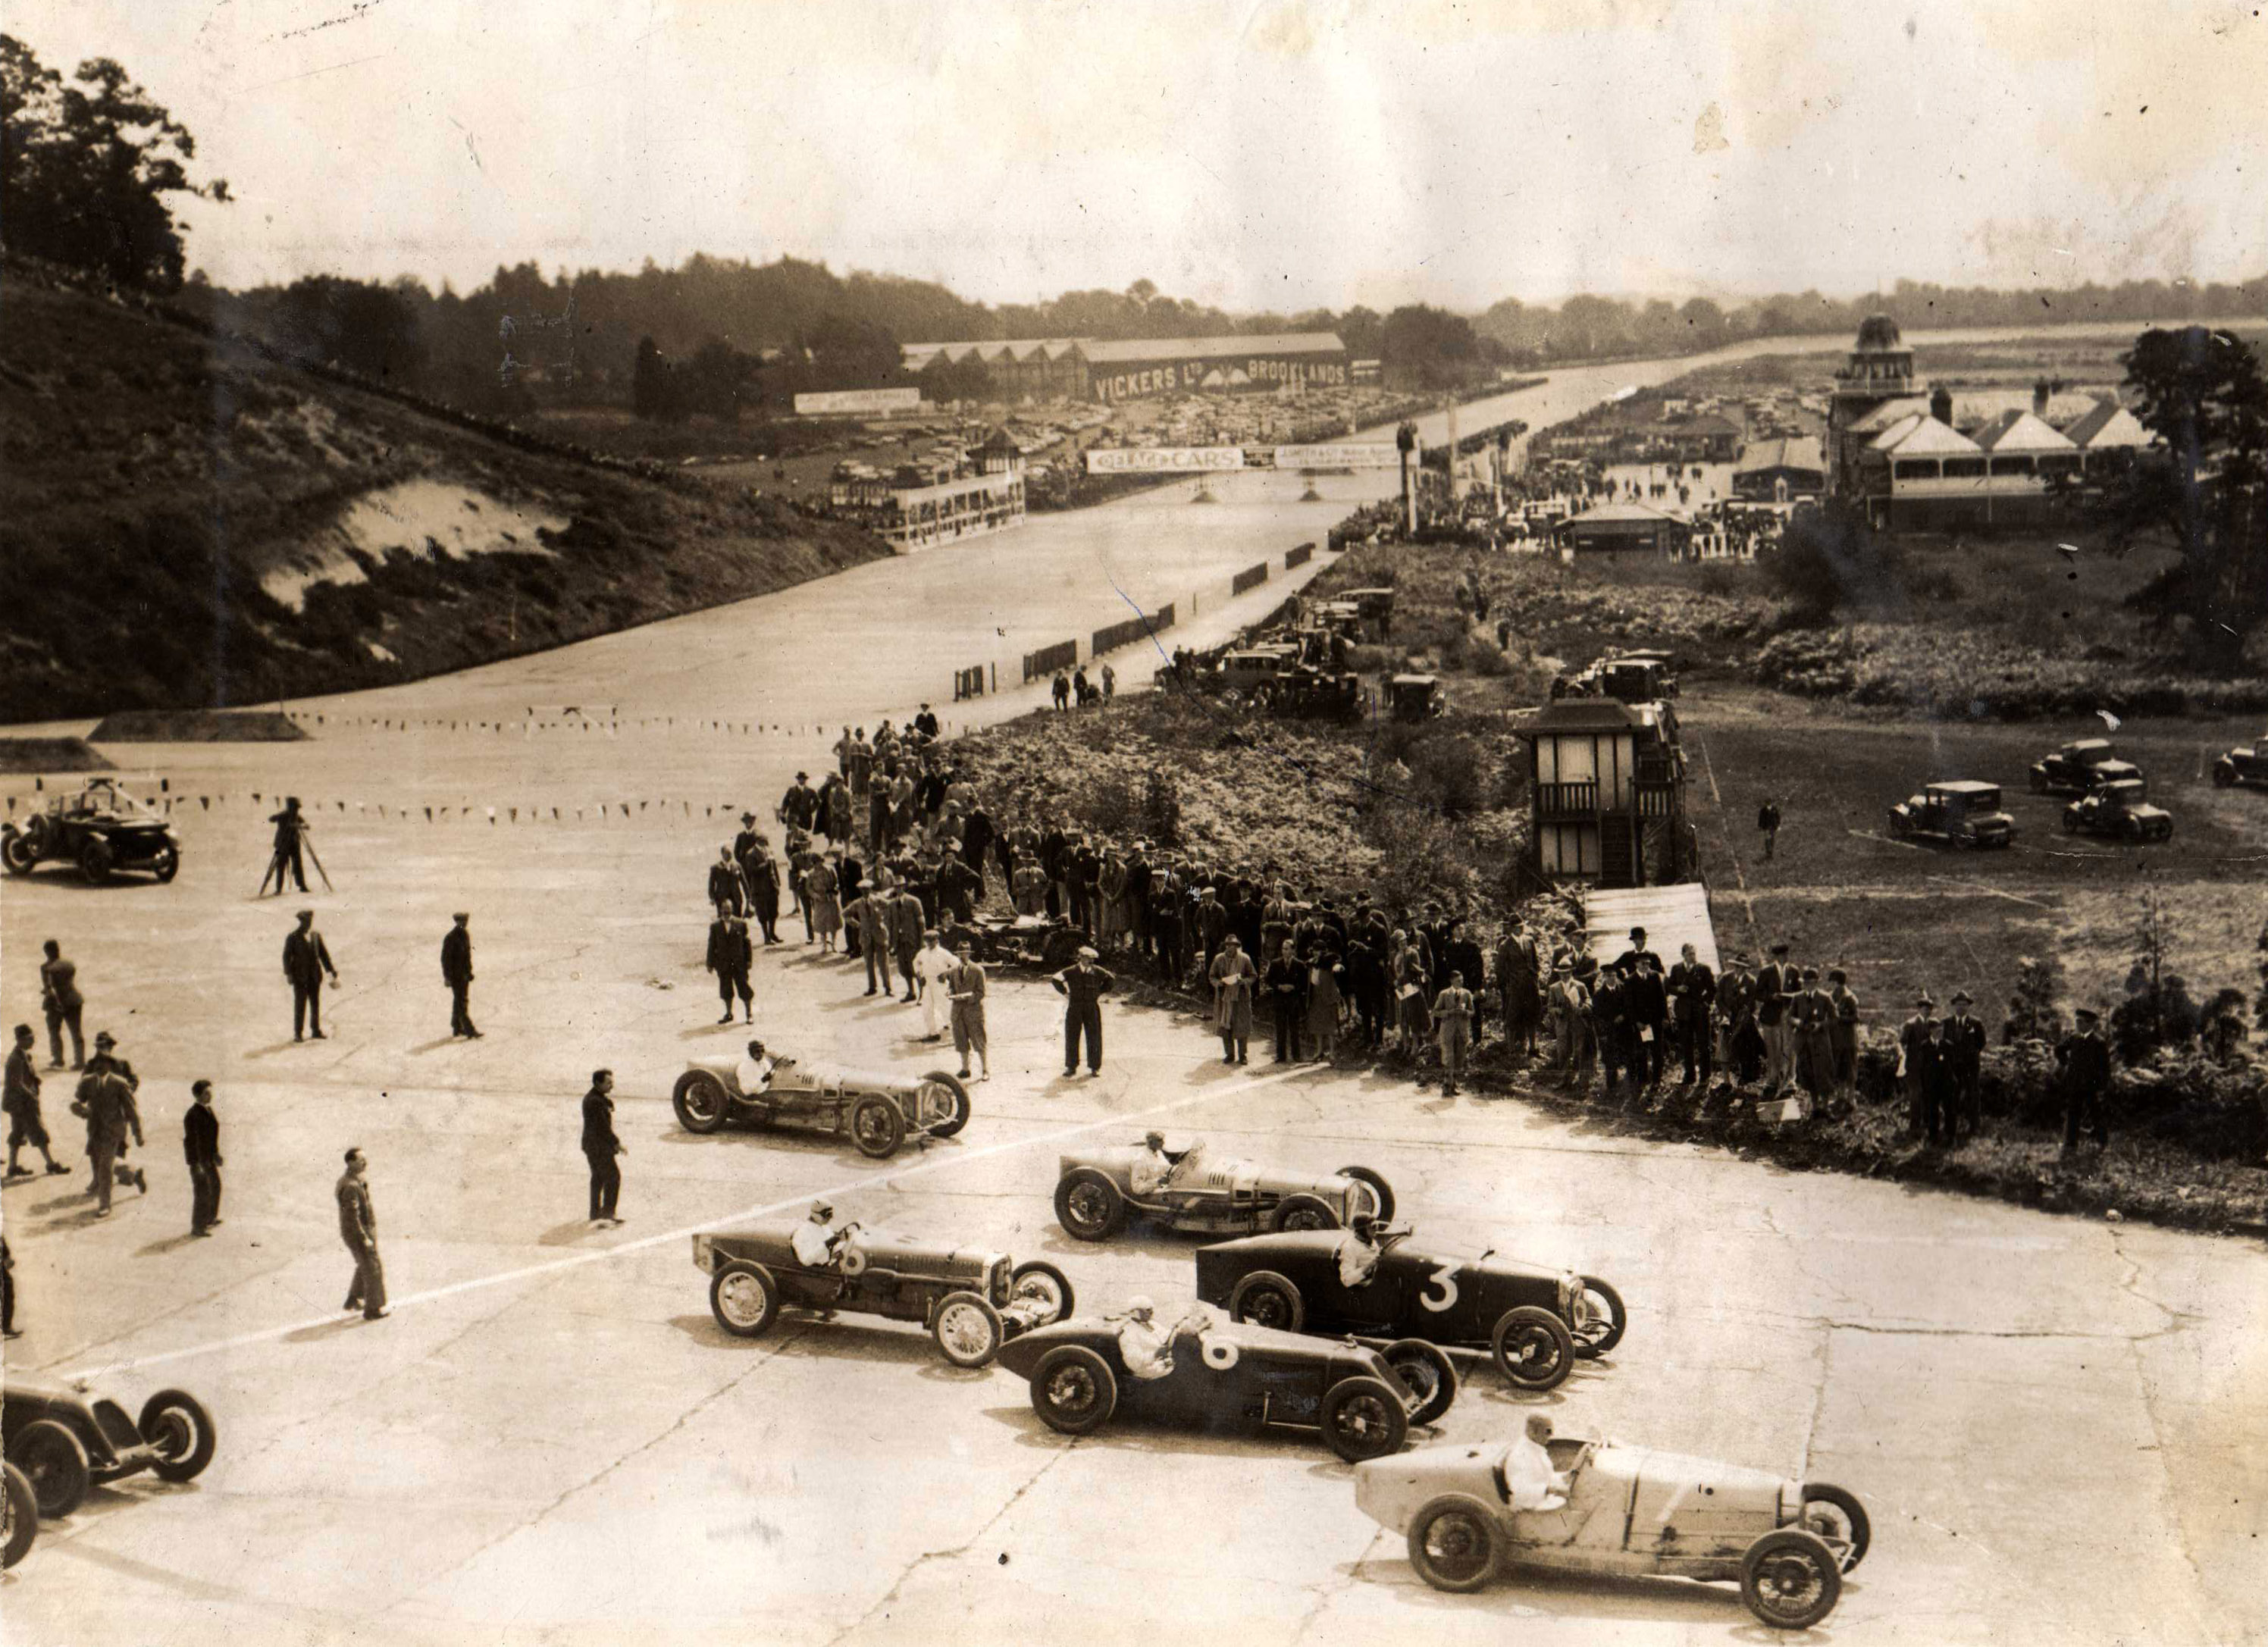 The first British Grand Prix was held at the Brooklands circuit , organised by Henry Seagrave. However, it was won by the French team of Louis Wagner and Robert Senechal driving a Delage 155B.